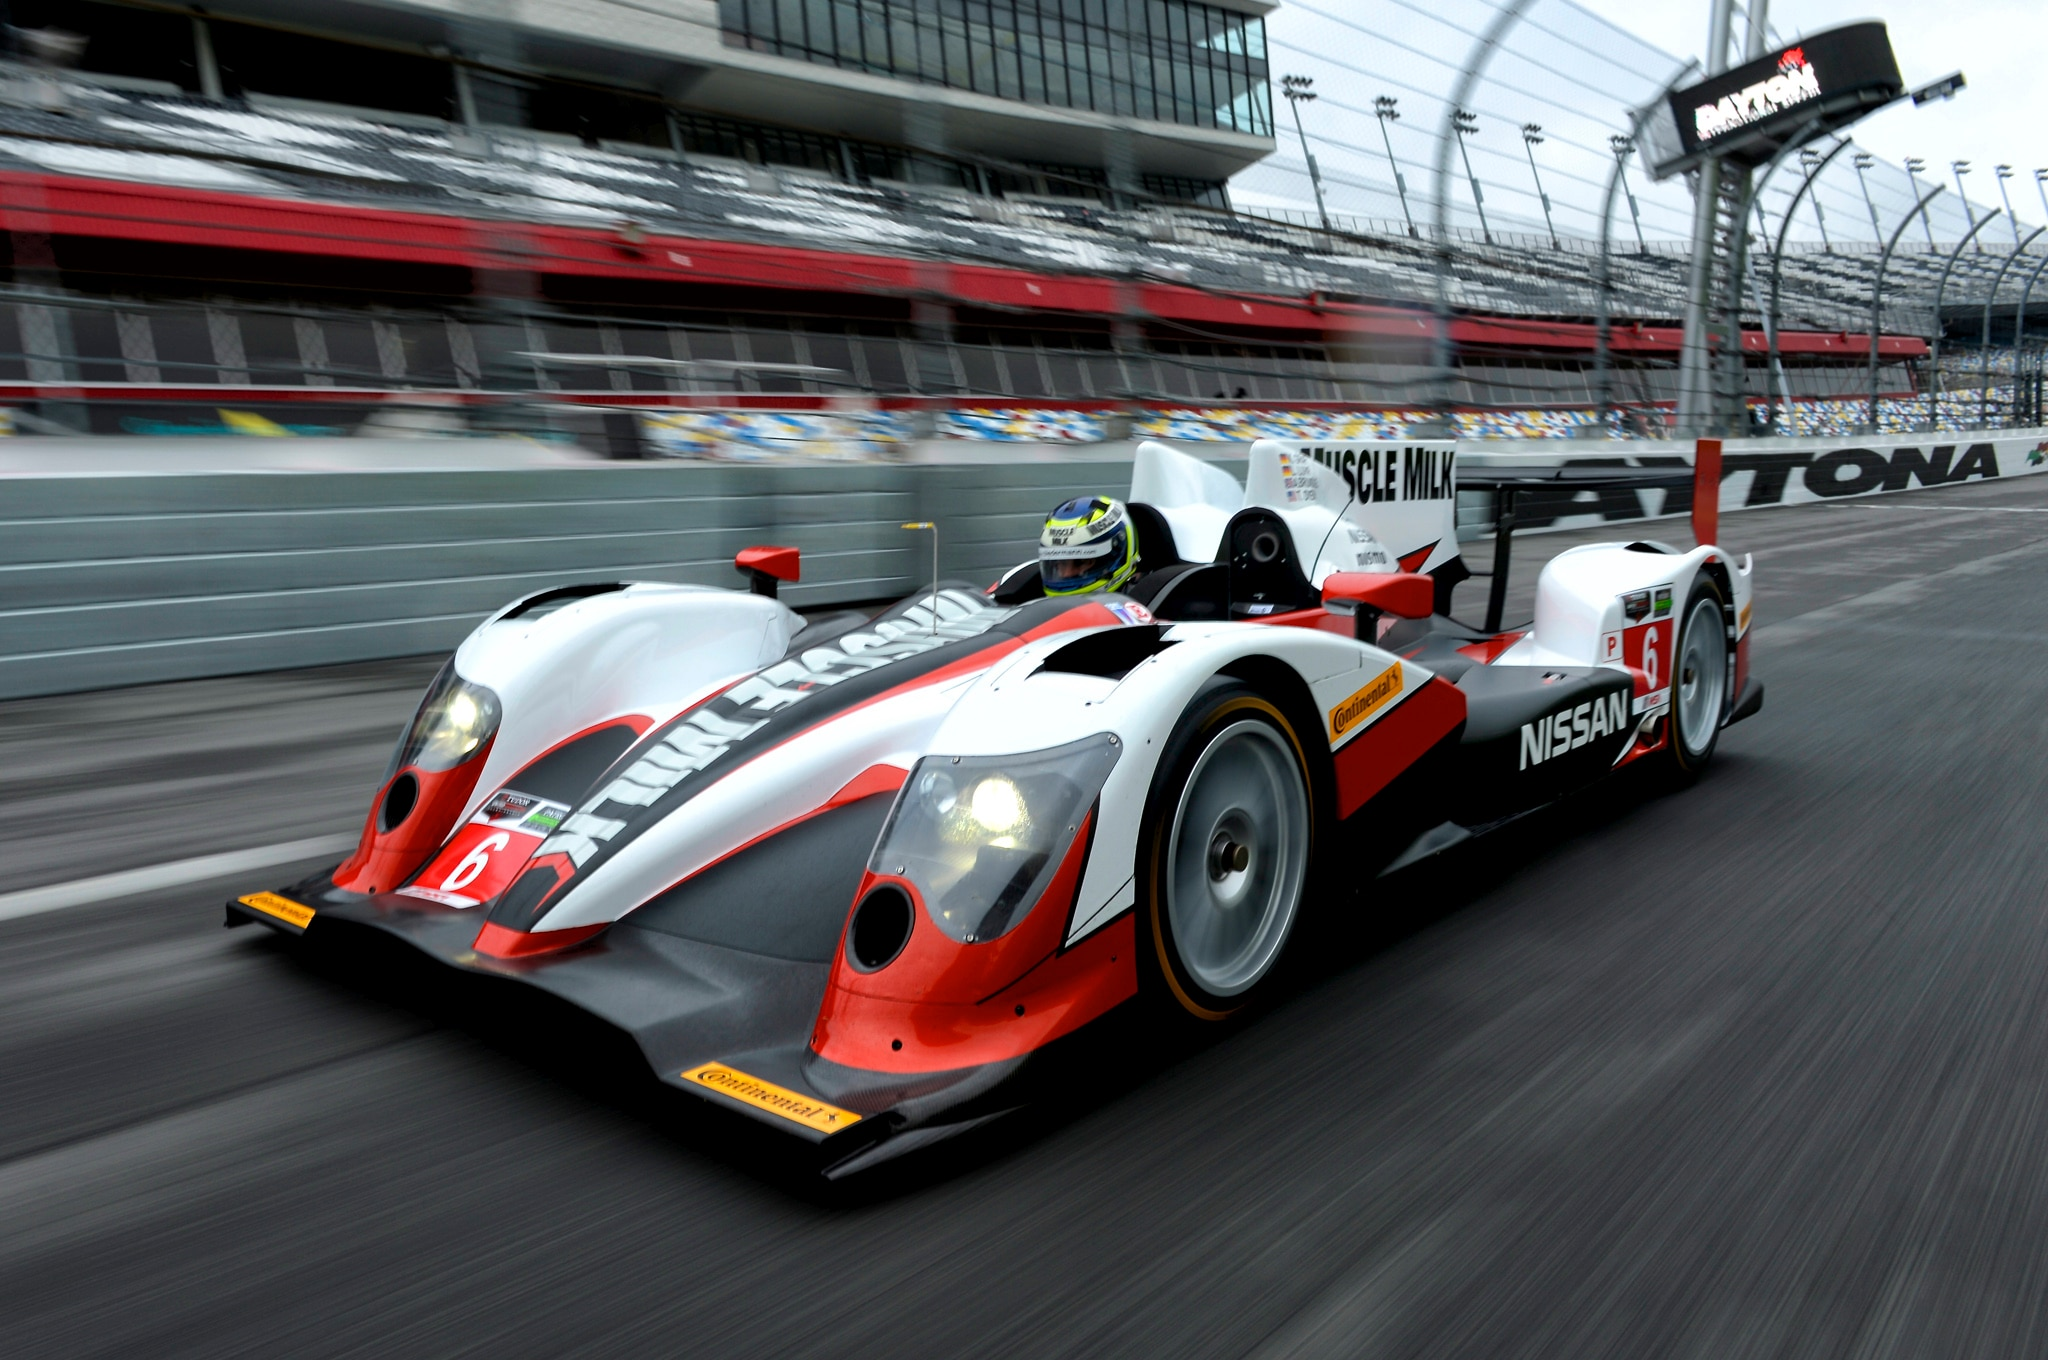 Nissan Muscle Milk Daytona Prototype Front View In Motion 11